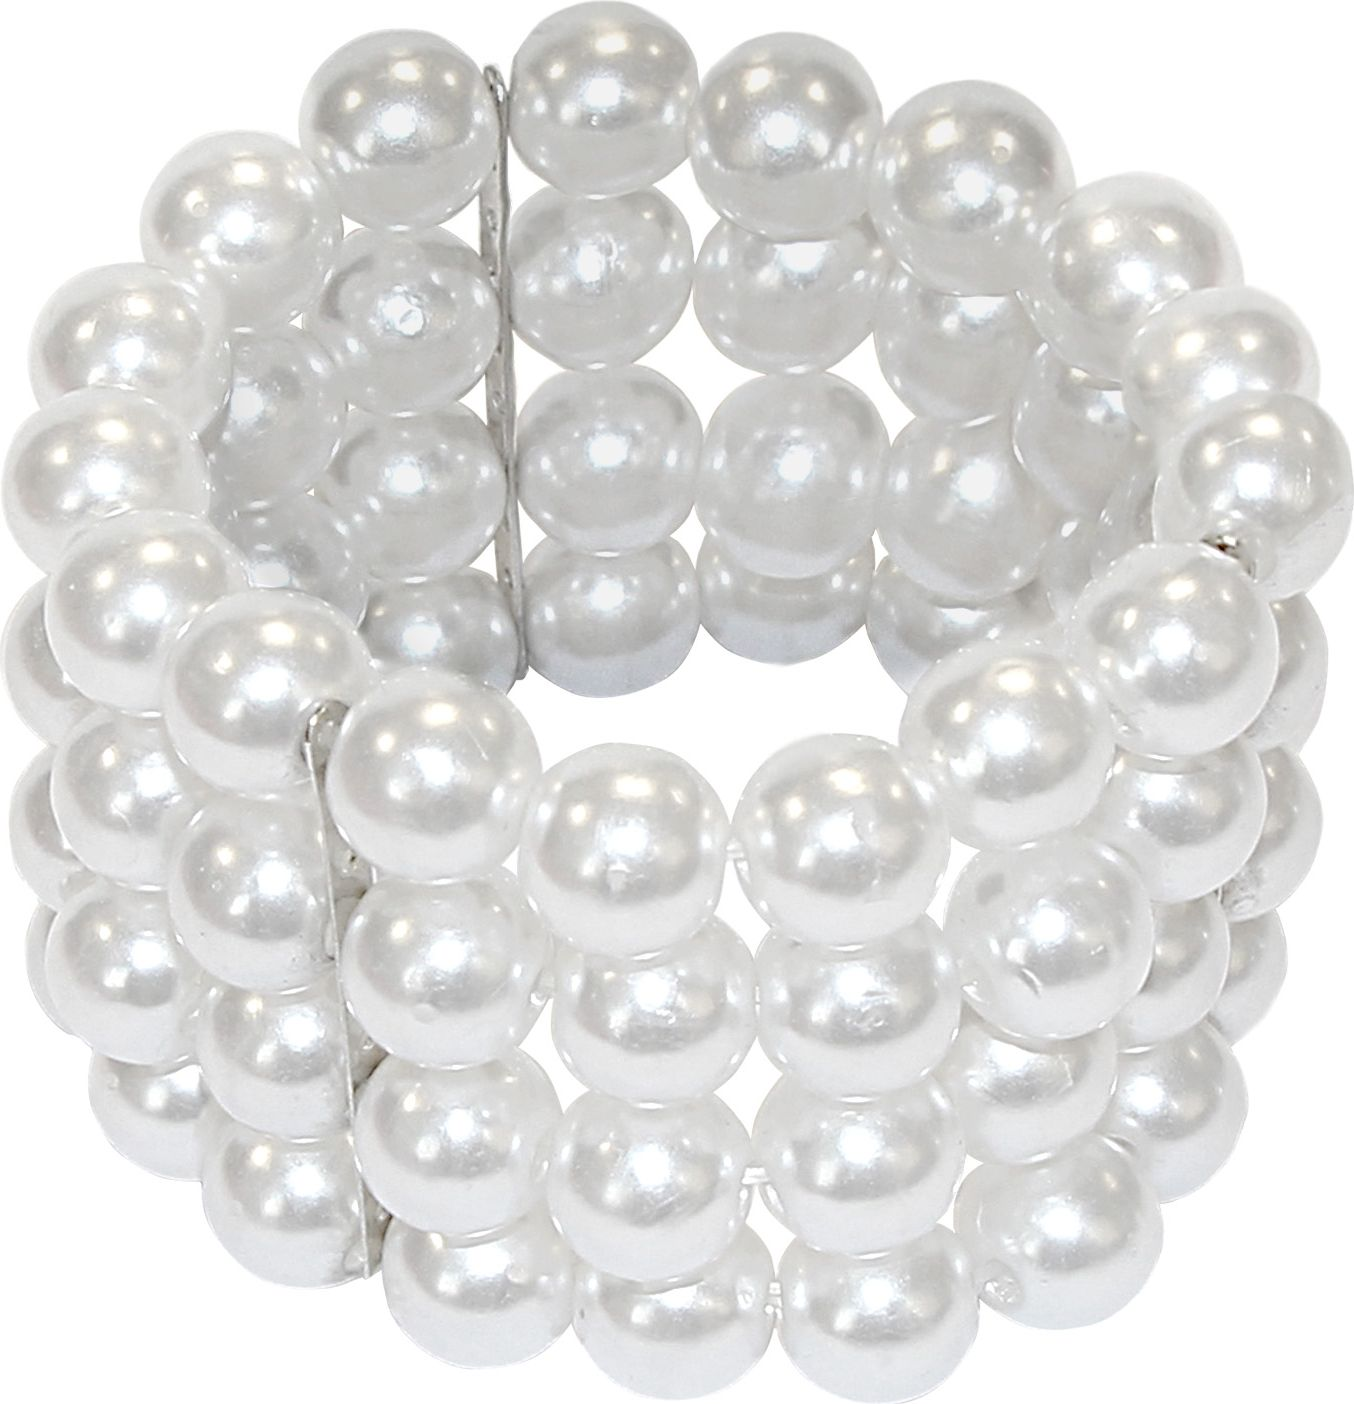 Parel armband luxe vrouwen